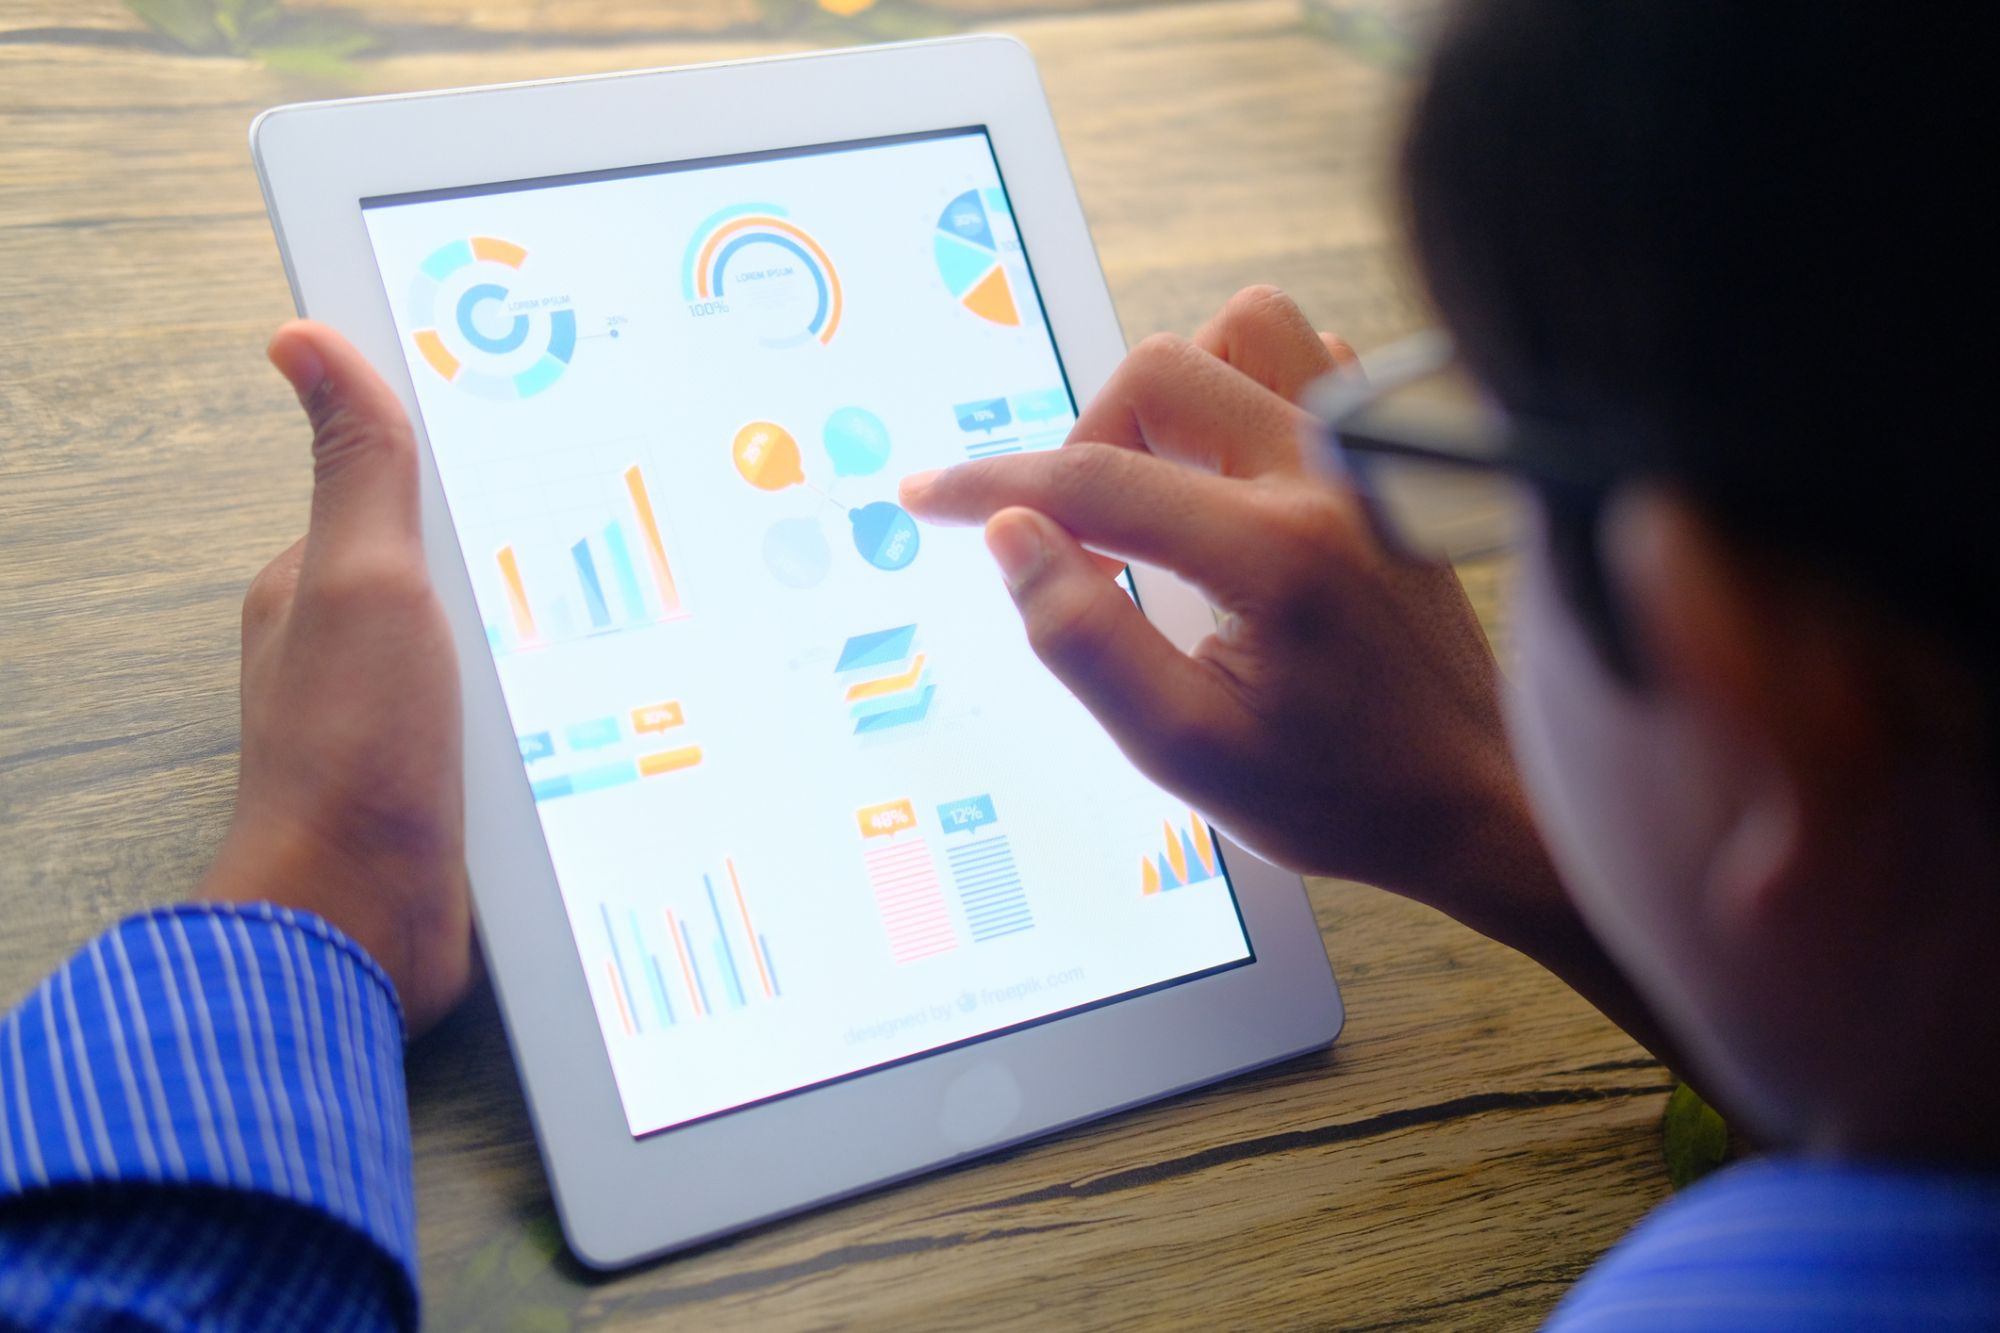 Startup Entrepreneurs Need to Take Business Intelligence Seriously in 2020